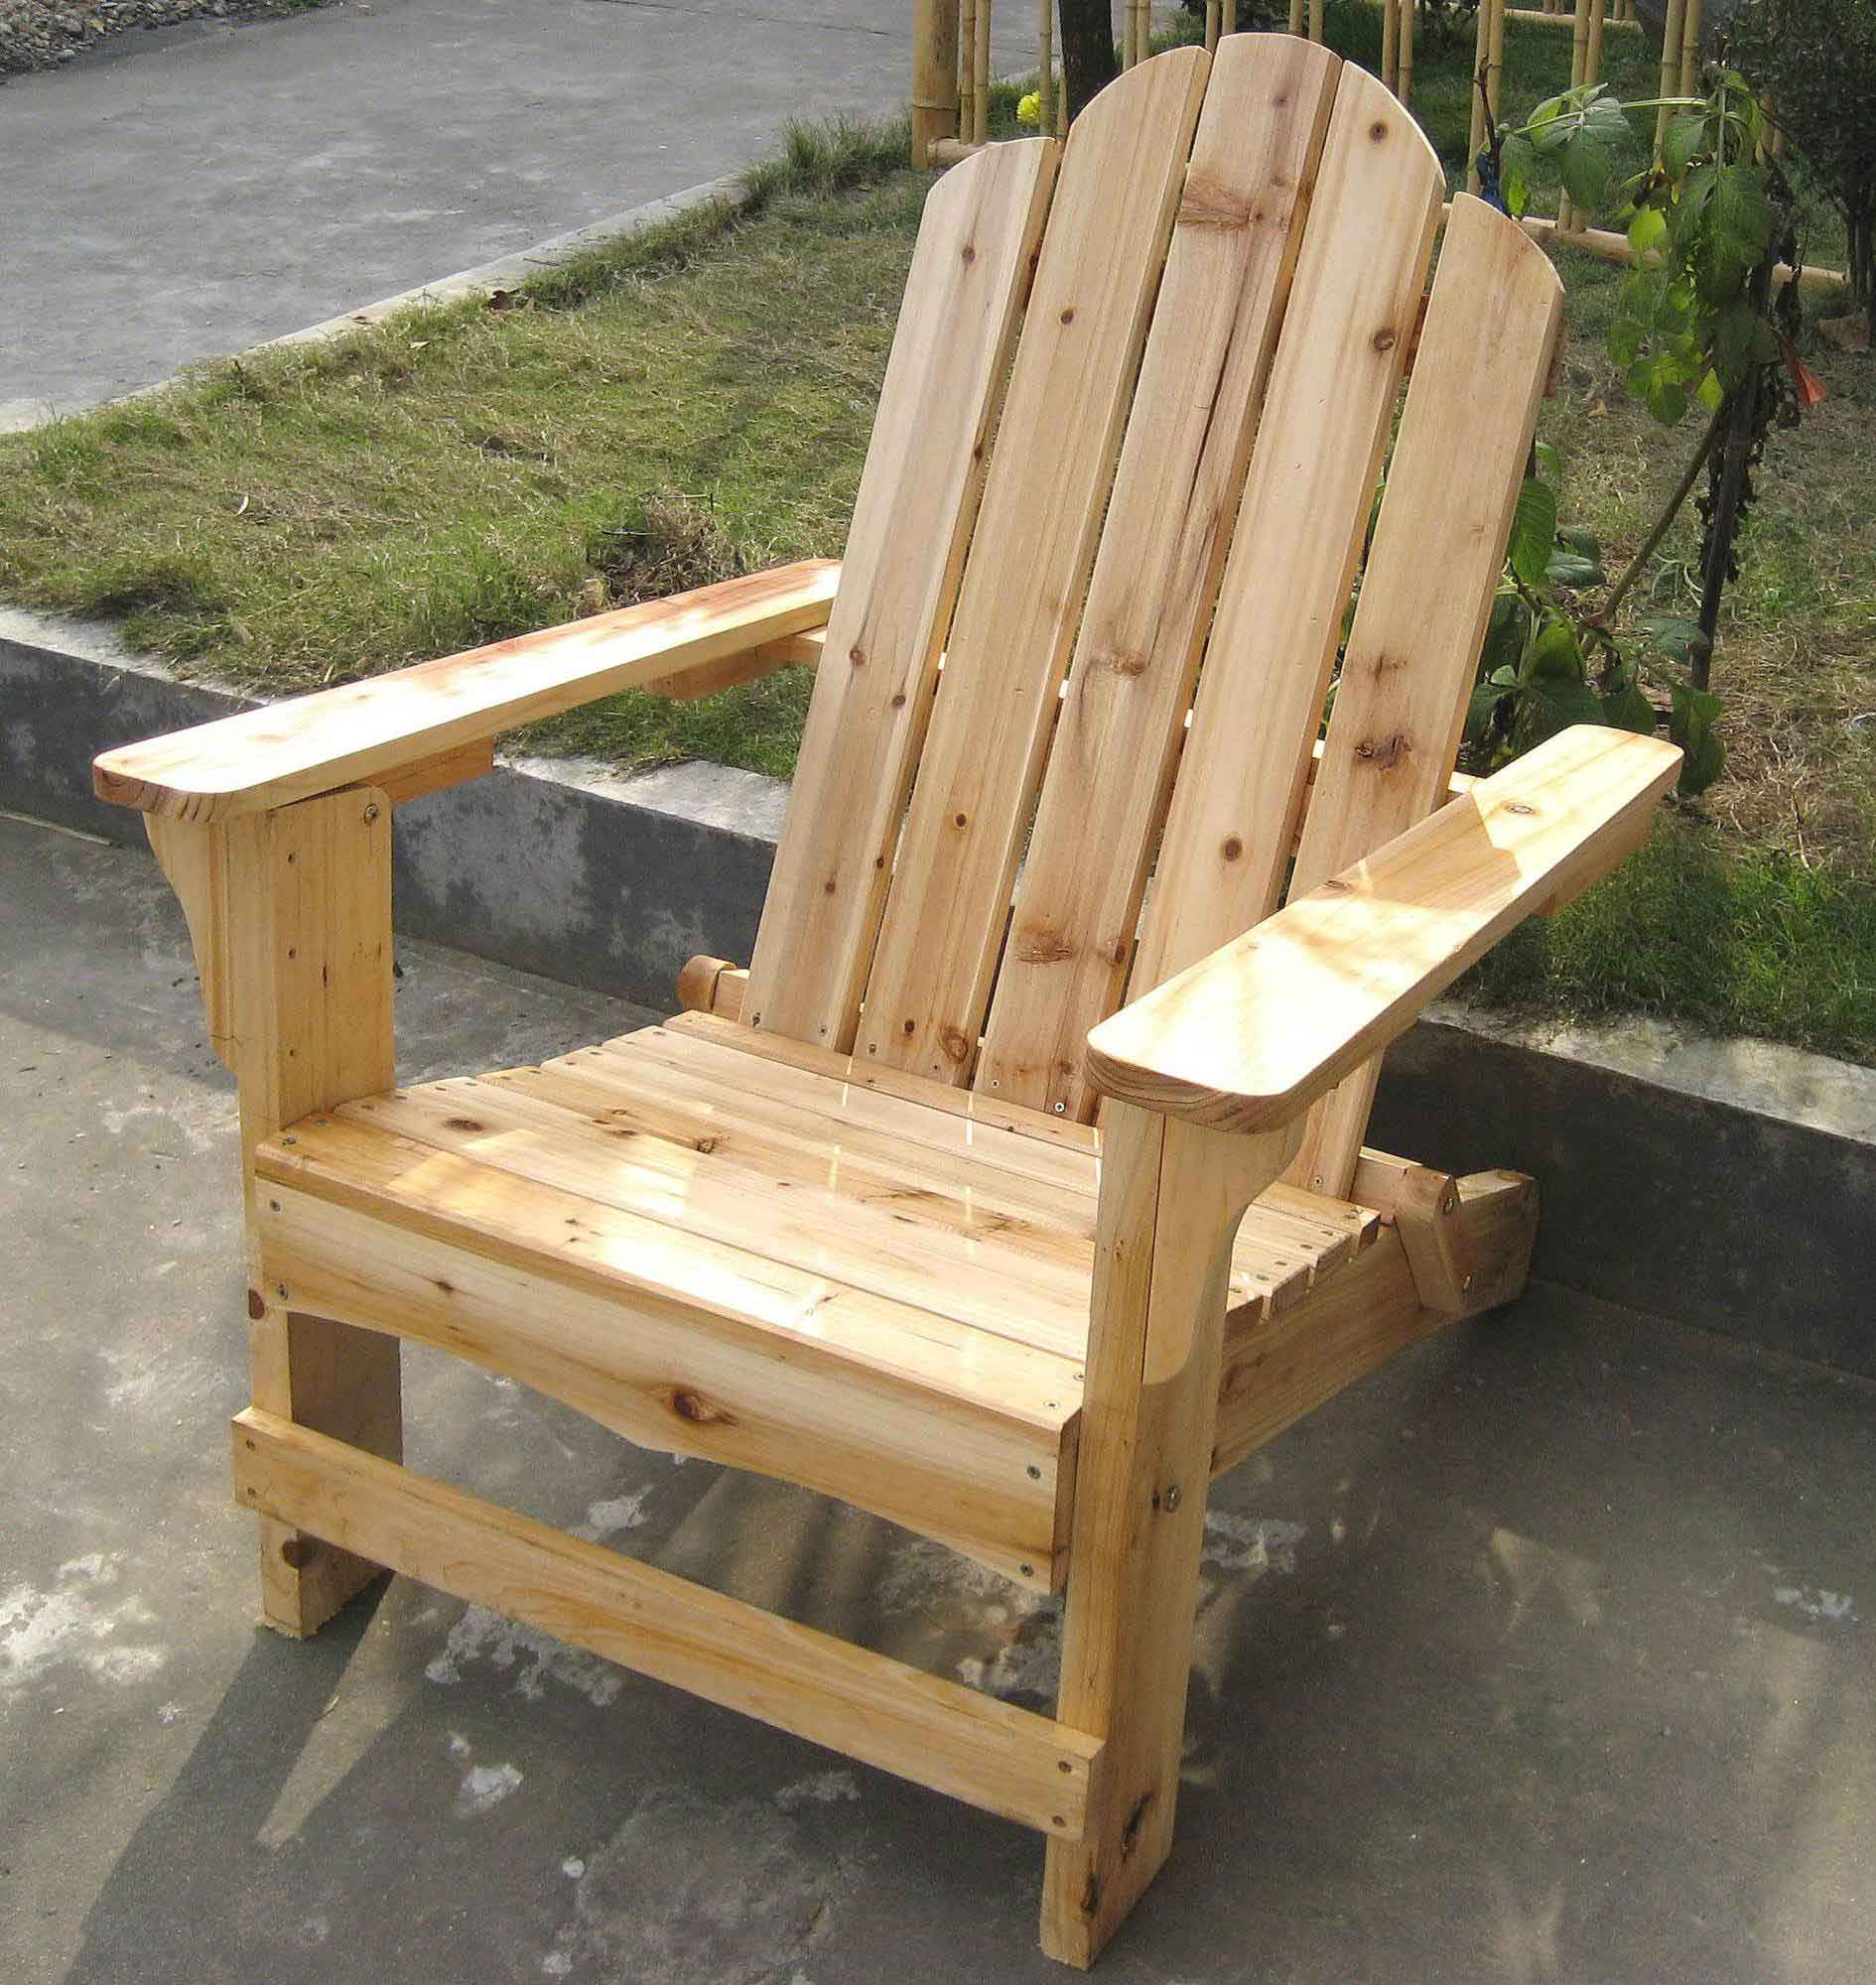 Wooden Furniture & More